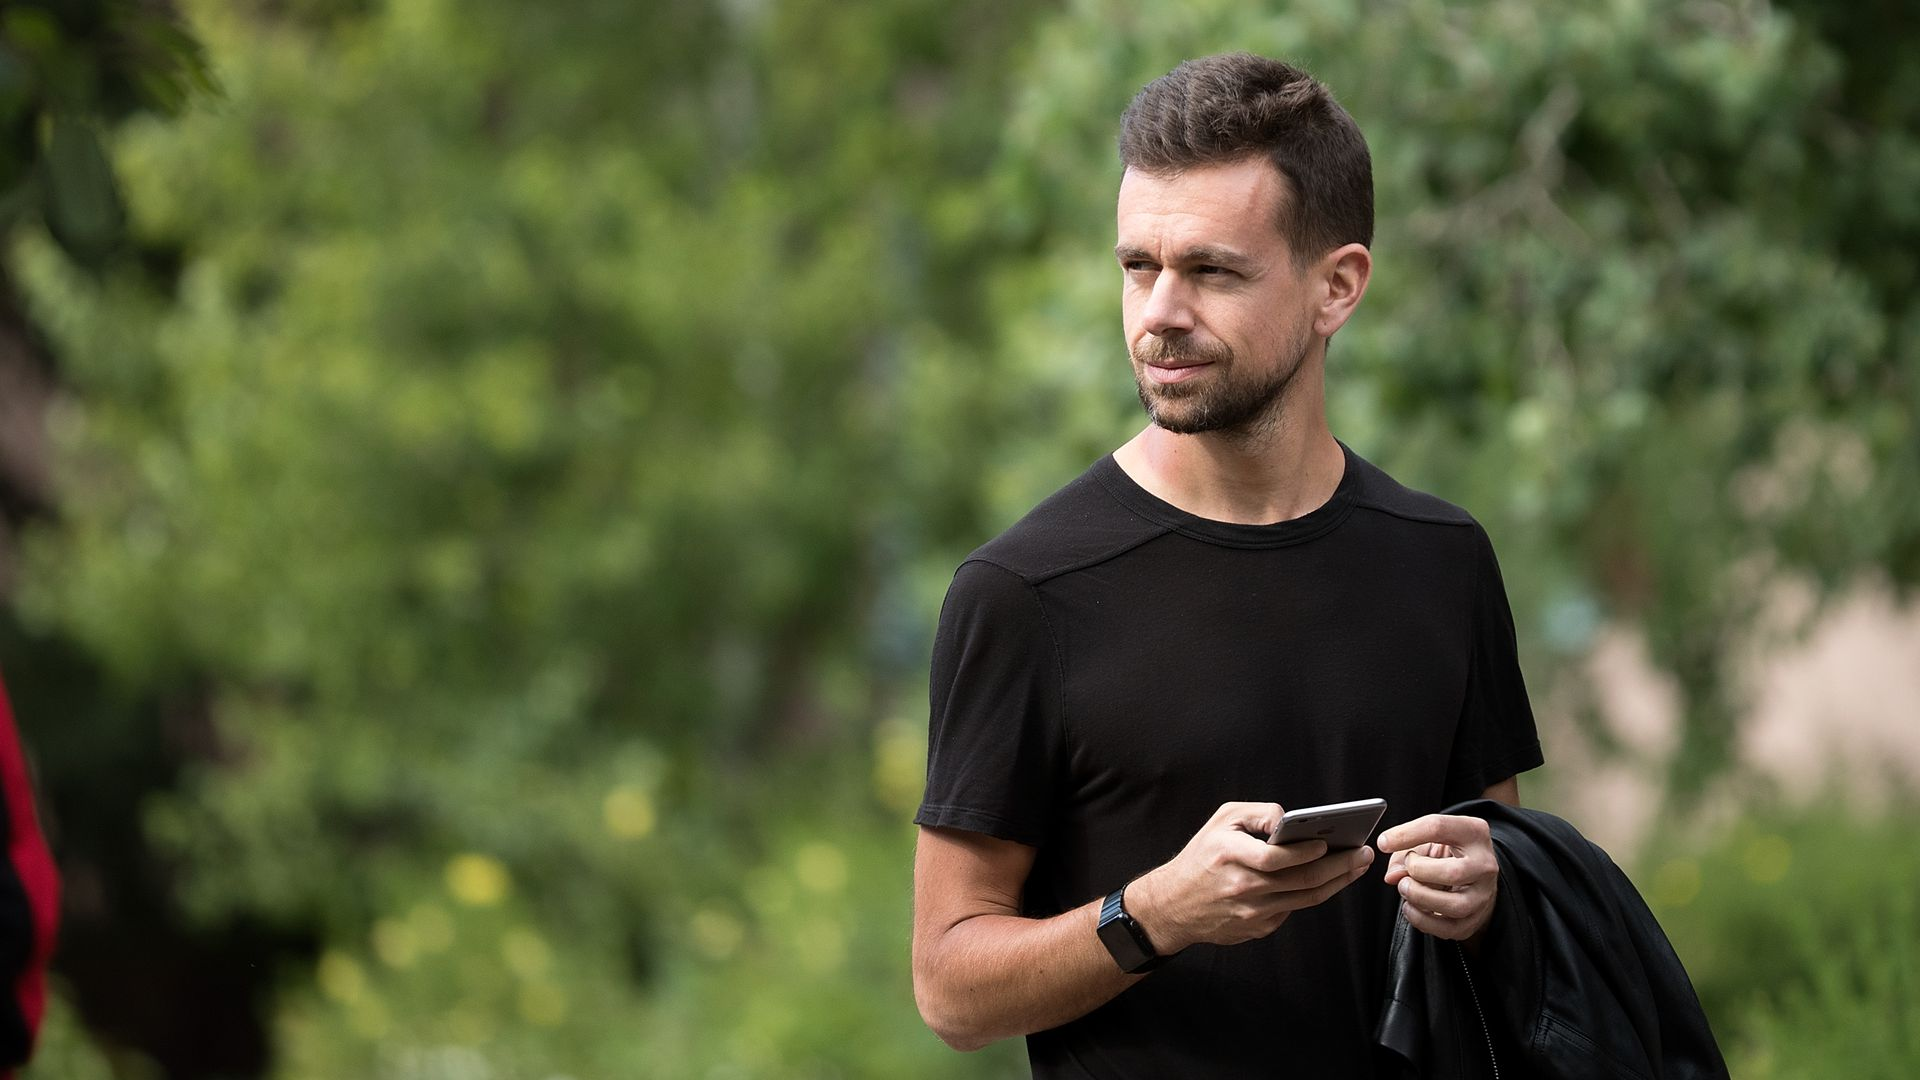 Jack Dorsey looking up from his phone.